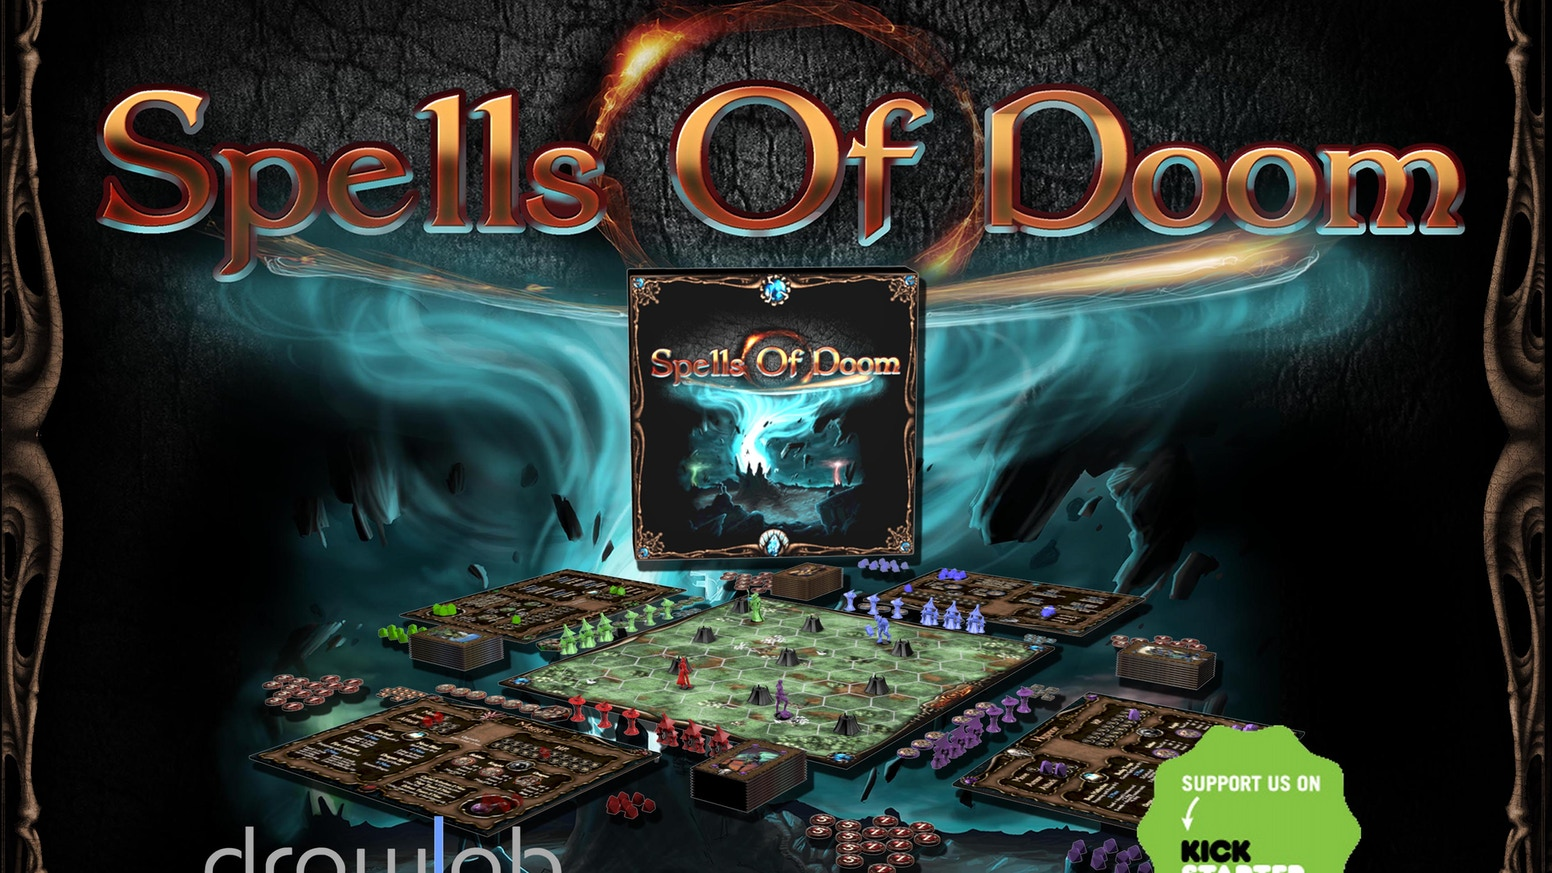 Become a hero and take the fate of the realm in your hands in a fight full of magic in this new boardgame!